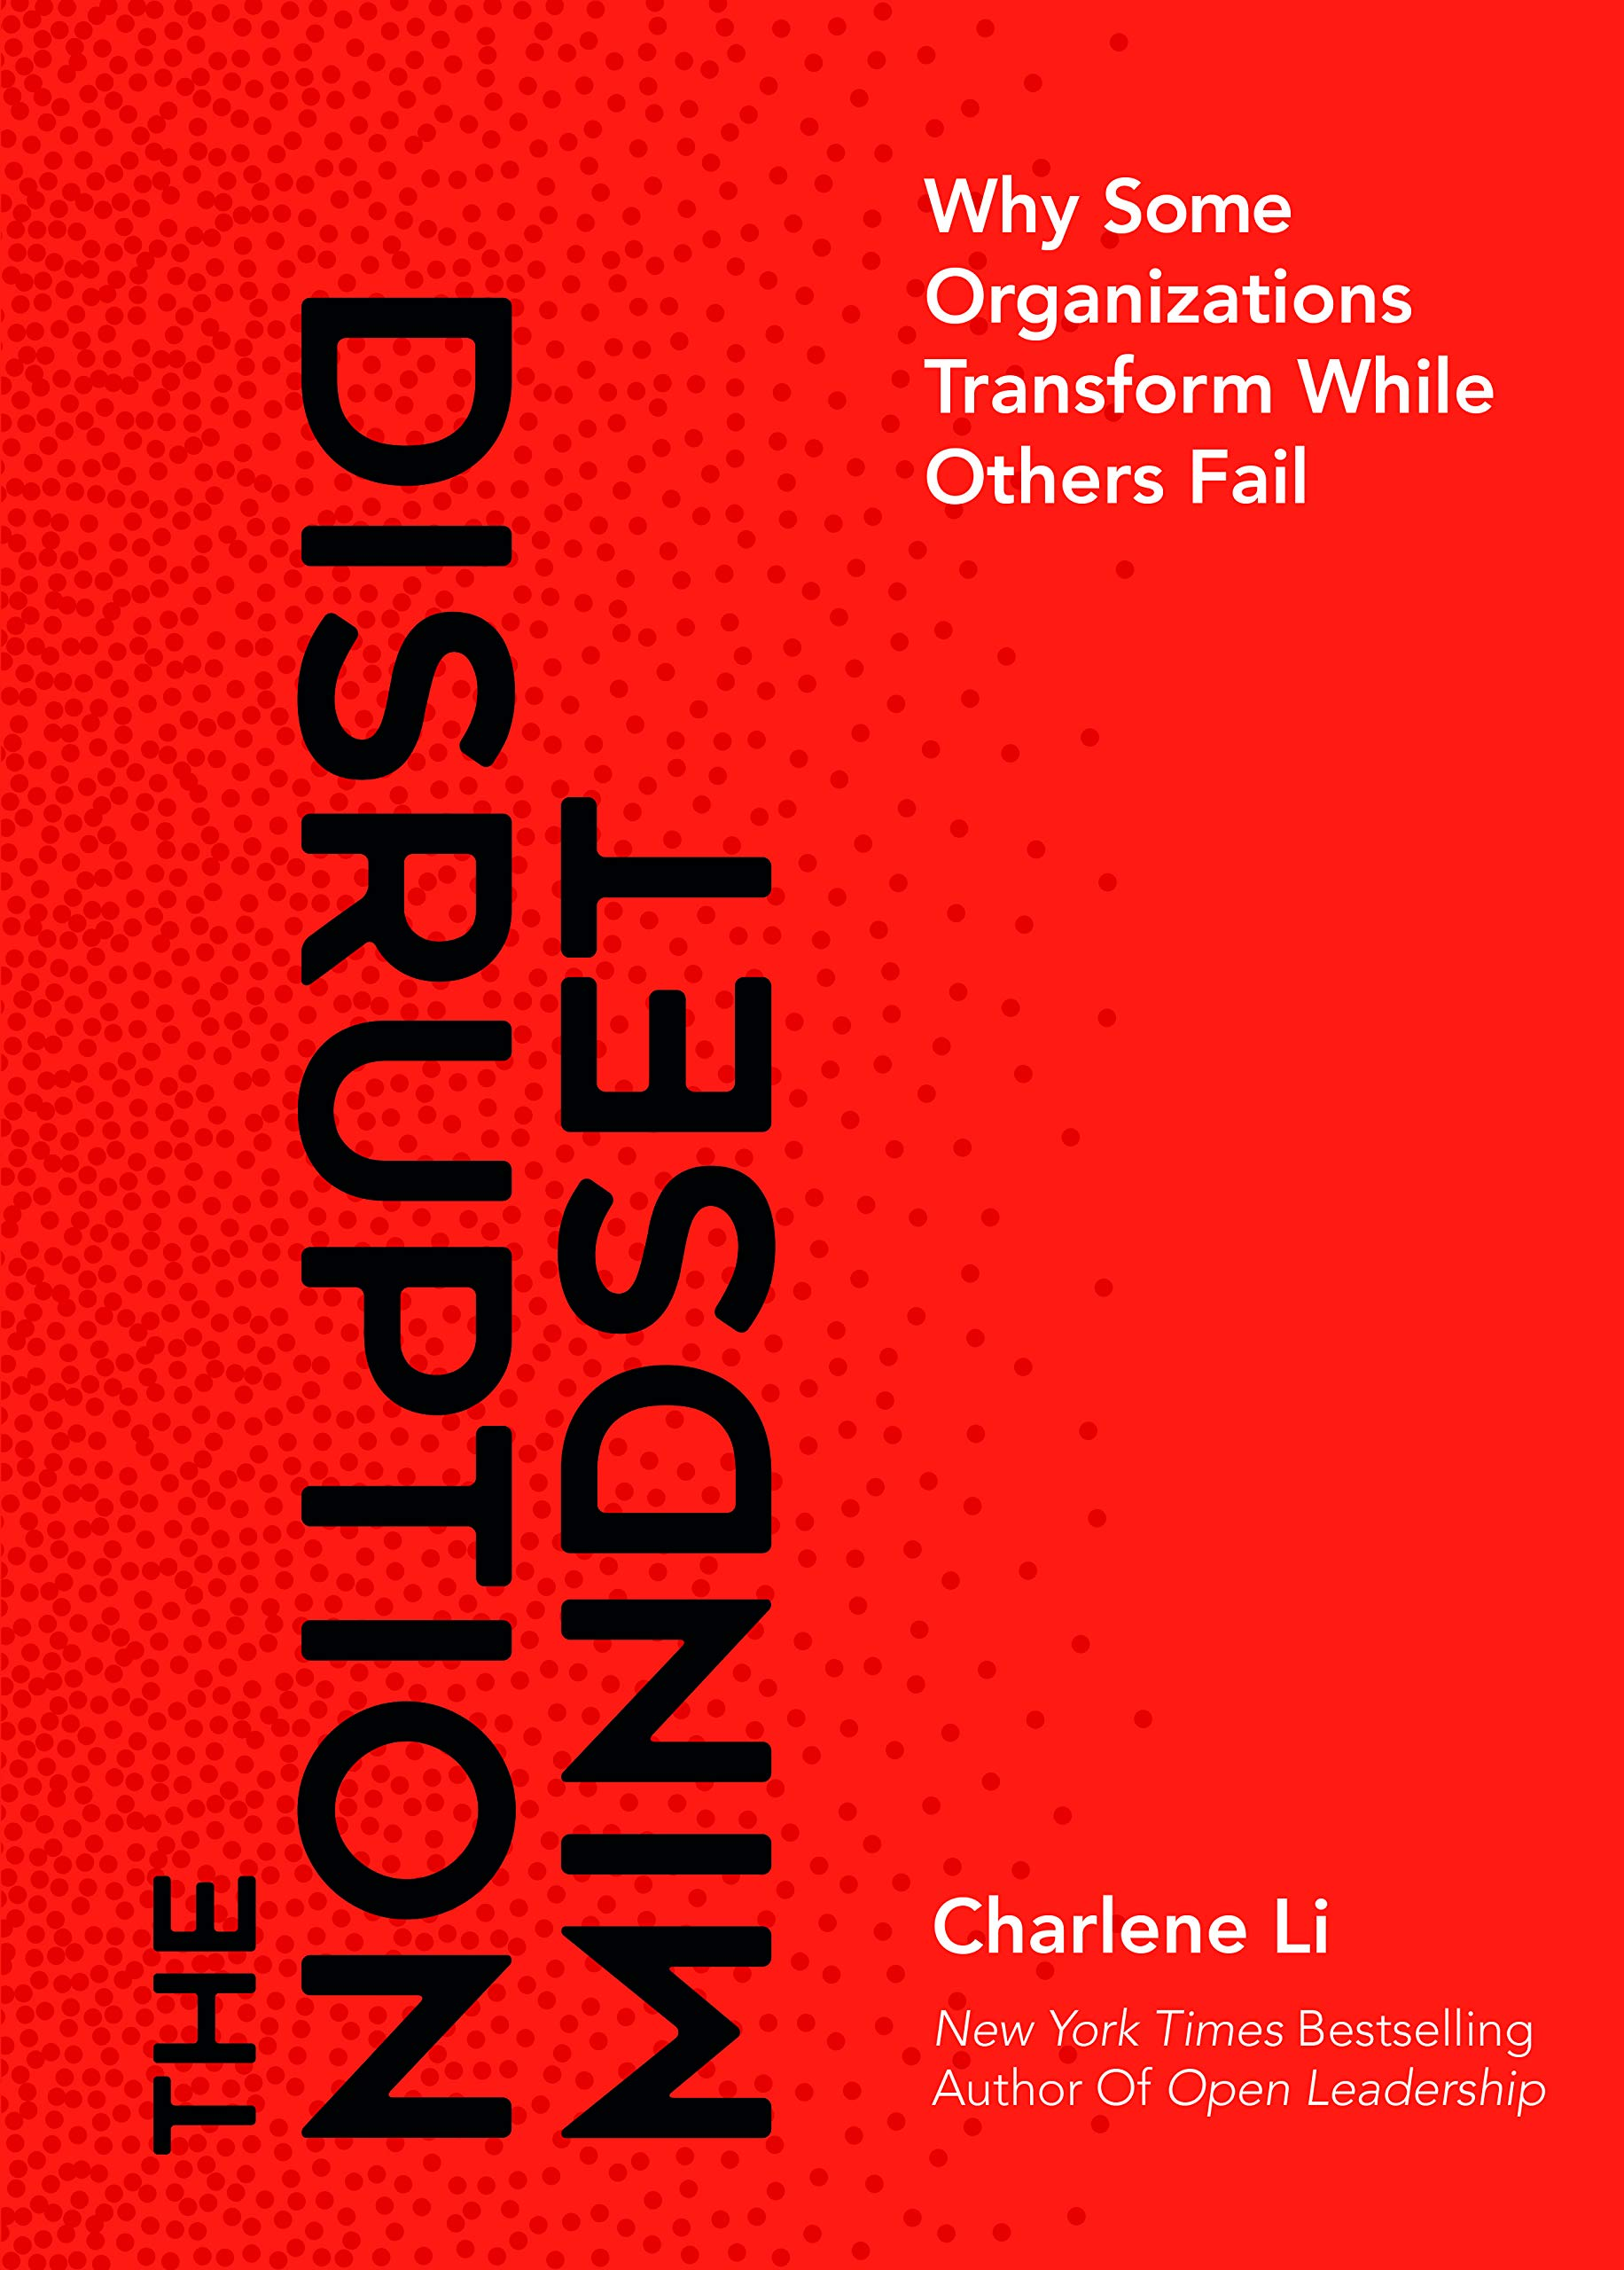 the disruption mindset book written by Charlene Li